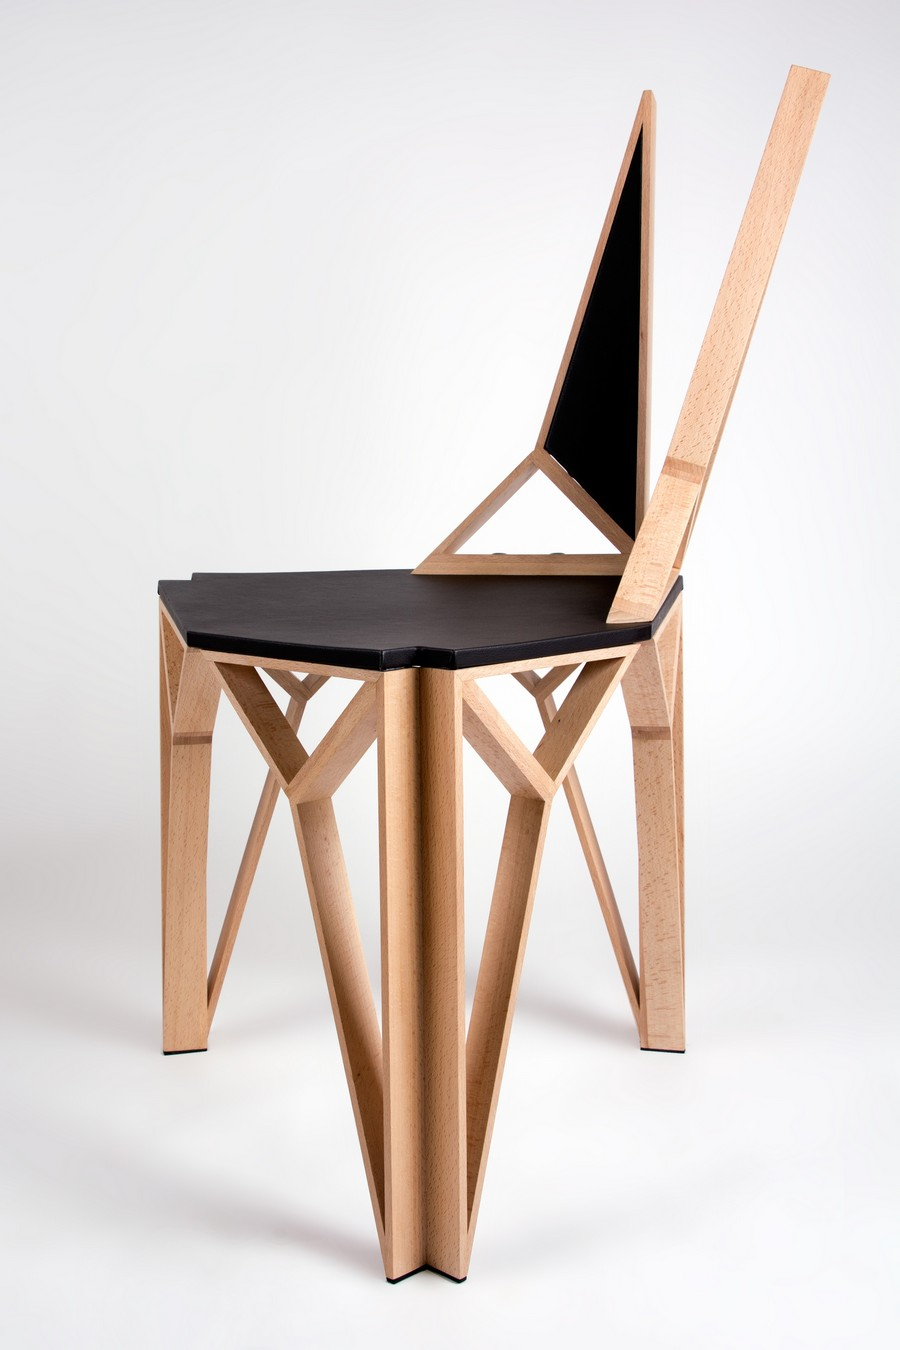 Experimental Furniture-Personality Expressed Trough a Chair| Alterego by Albert Puig